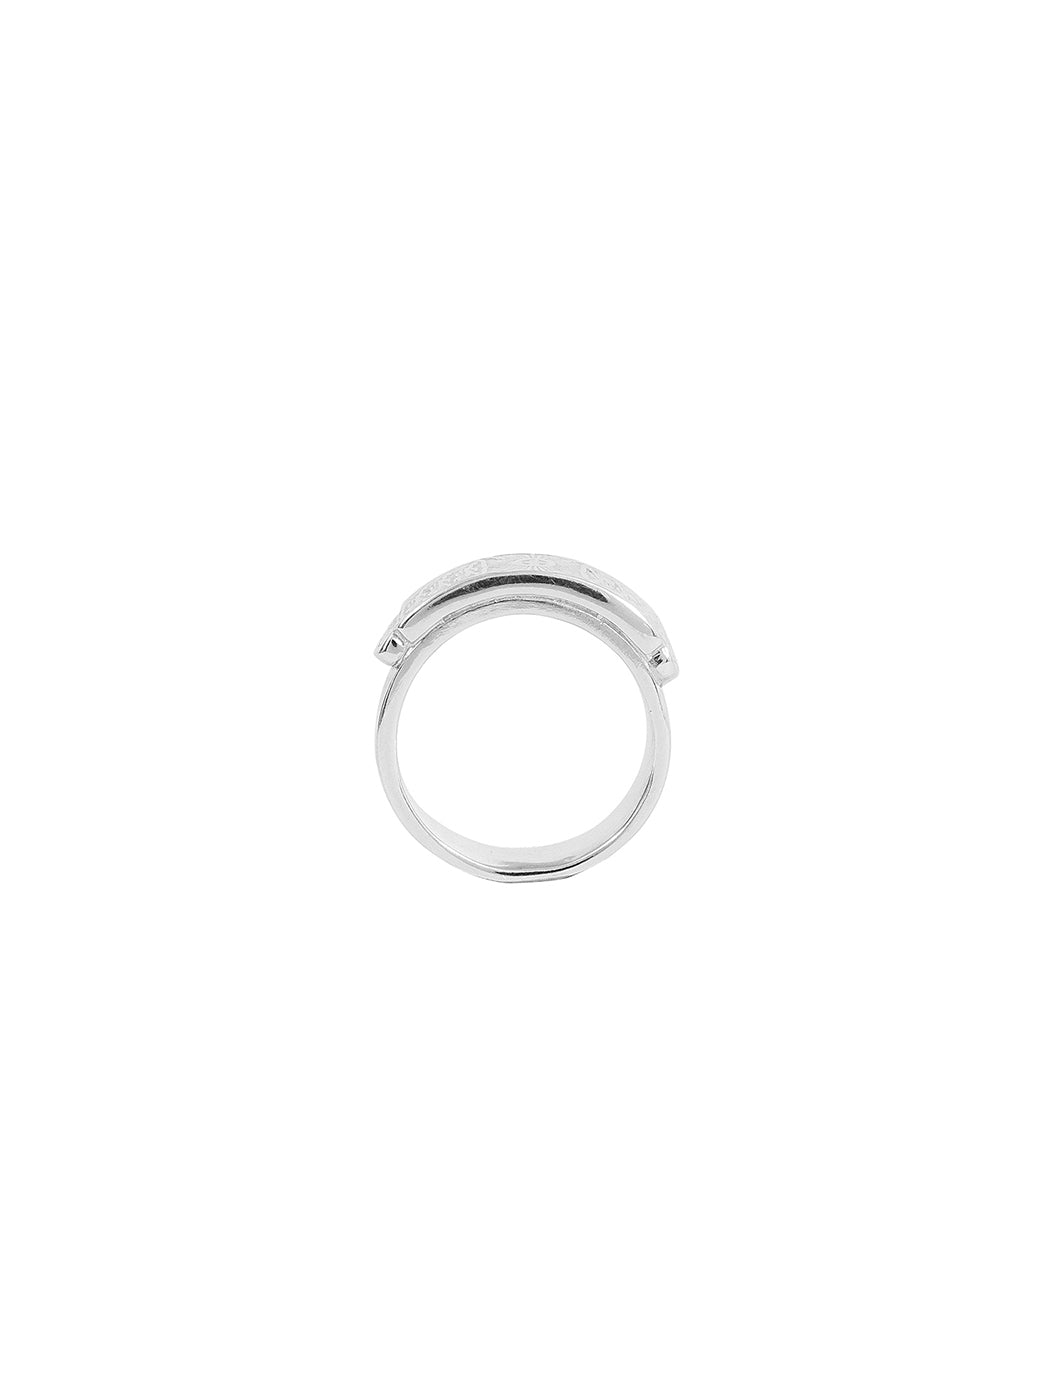 Fiorina Jewellery Jordan Ring Small Side View